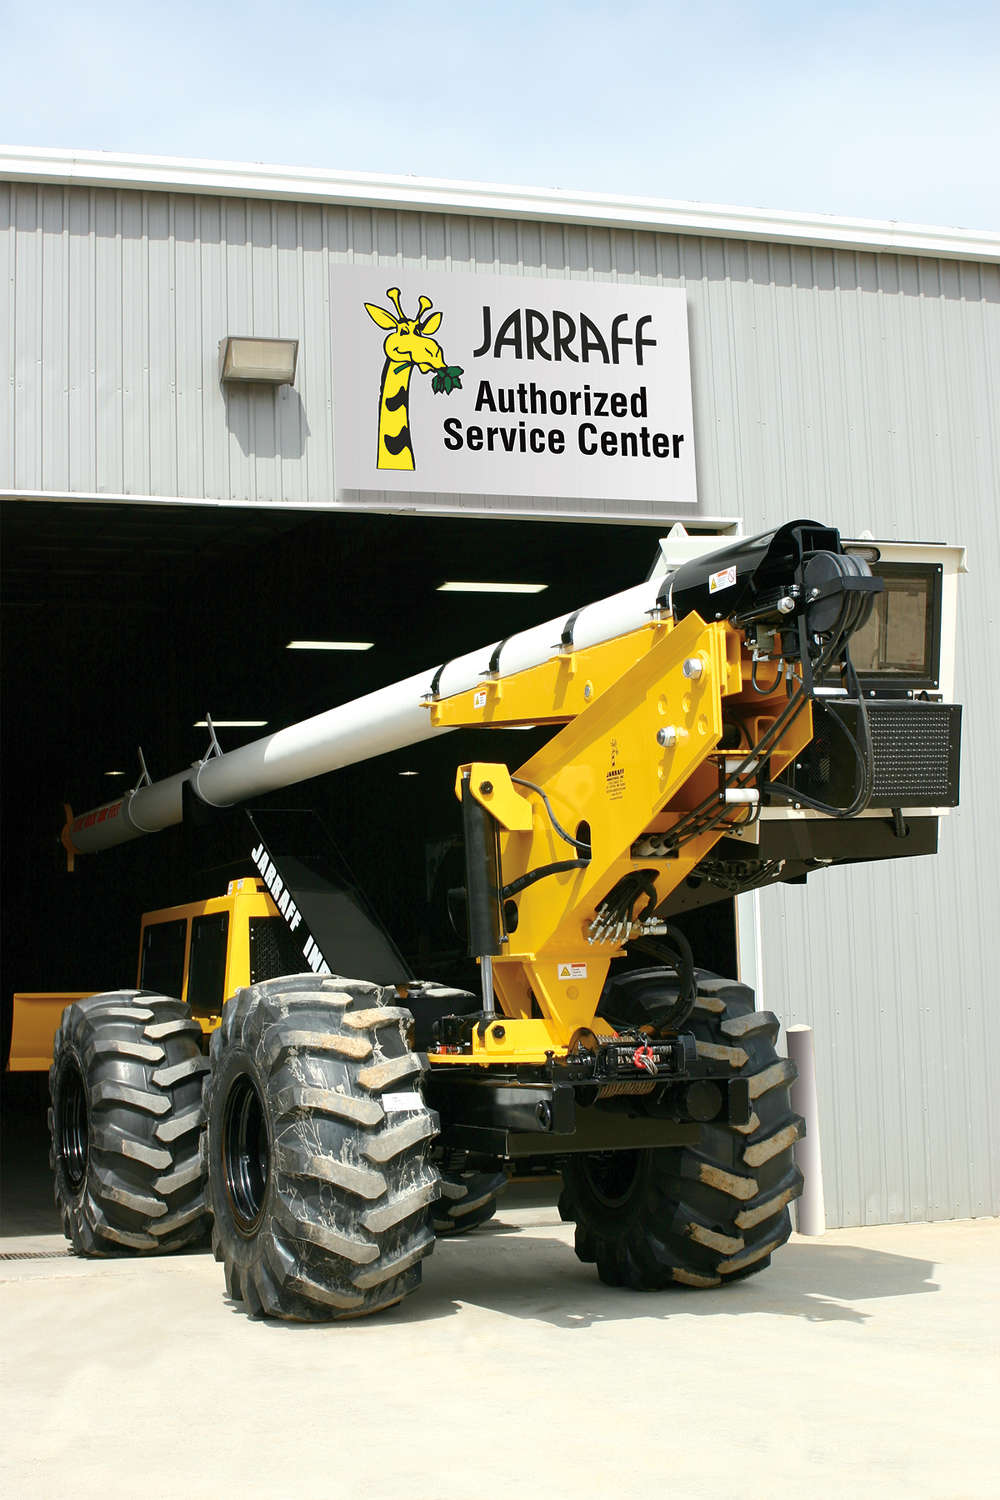 Jarraff Industries has added over-the-road mechanic services to its authorized service center.